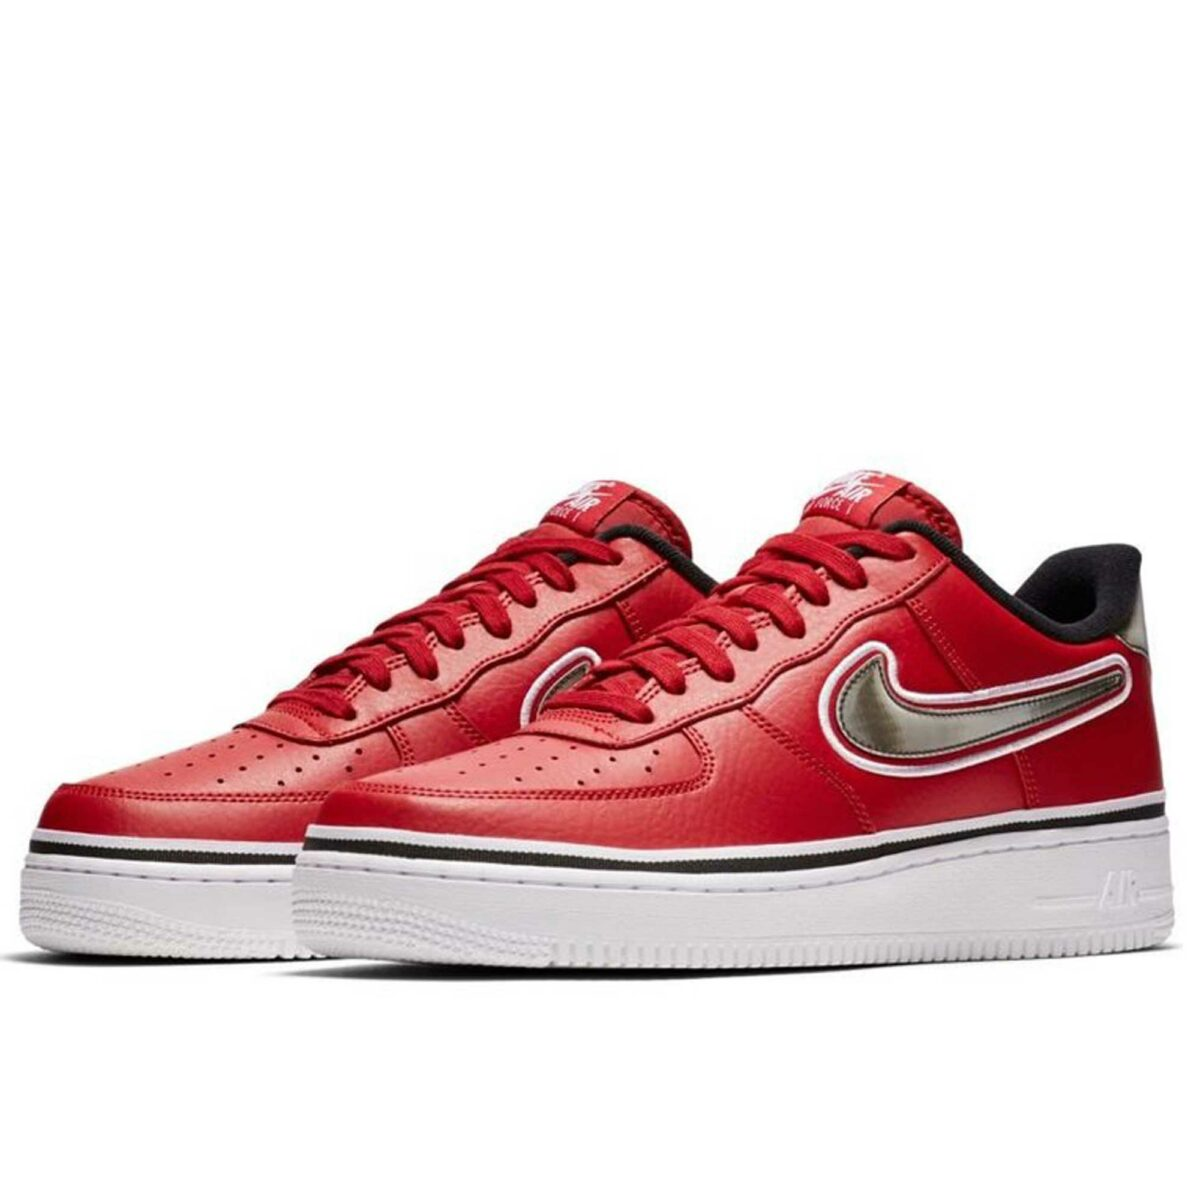 nike air force 1 '07 LV8 sport red white купить